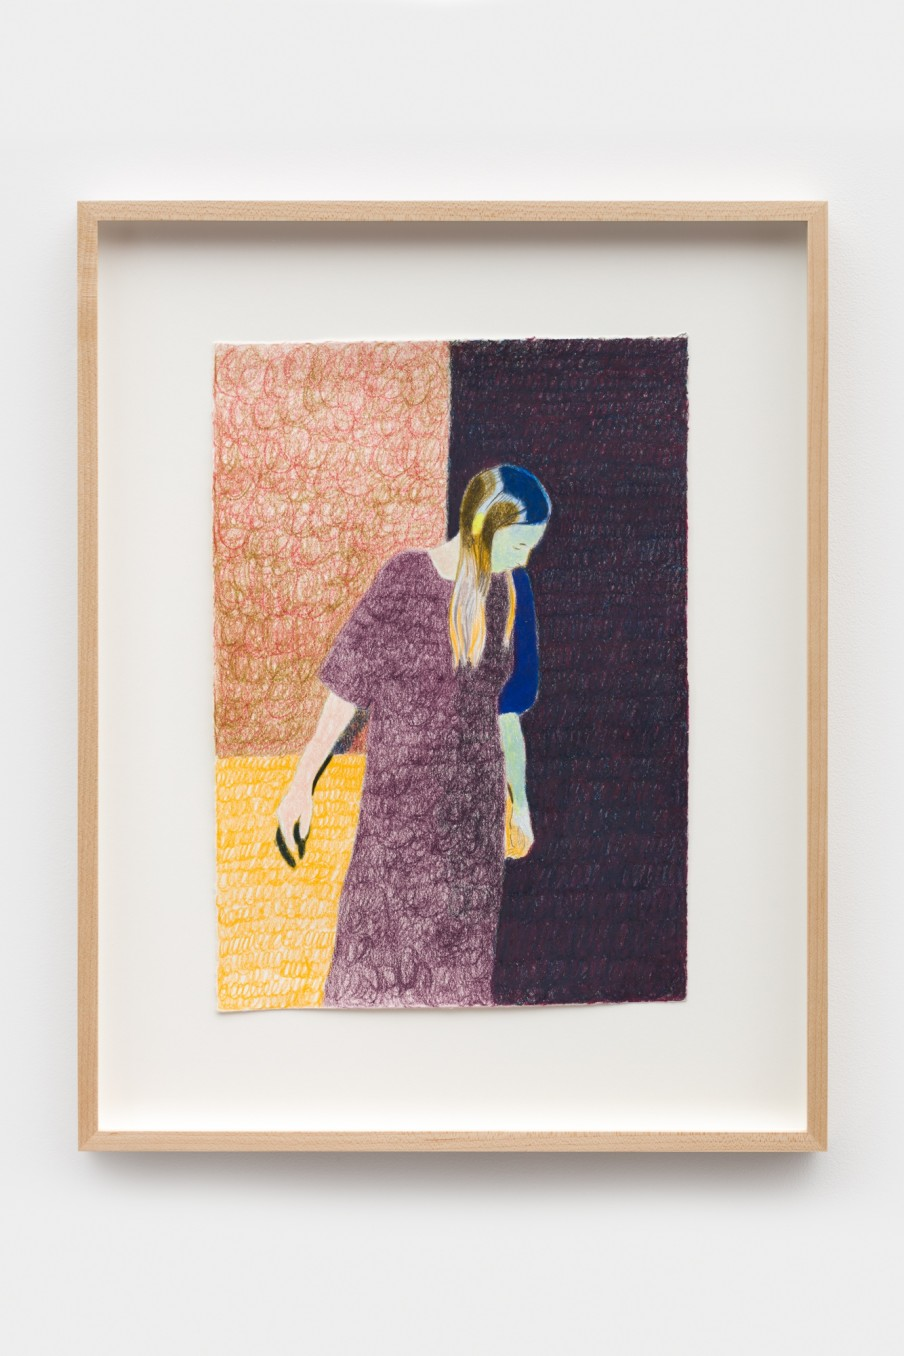 Anthony Cudahy Dress, 2021 Colored pencil on paper Image: 35.6 x 25.4 cm 14 x 10 in Frame: 50.4 x...